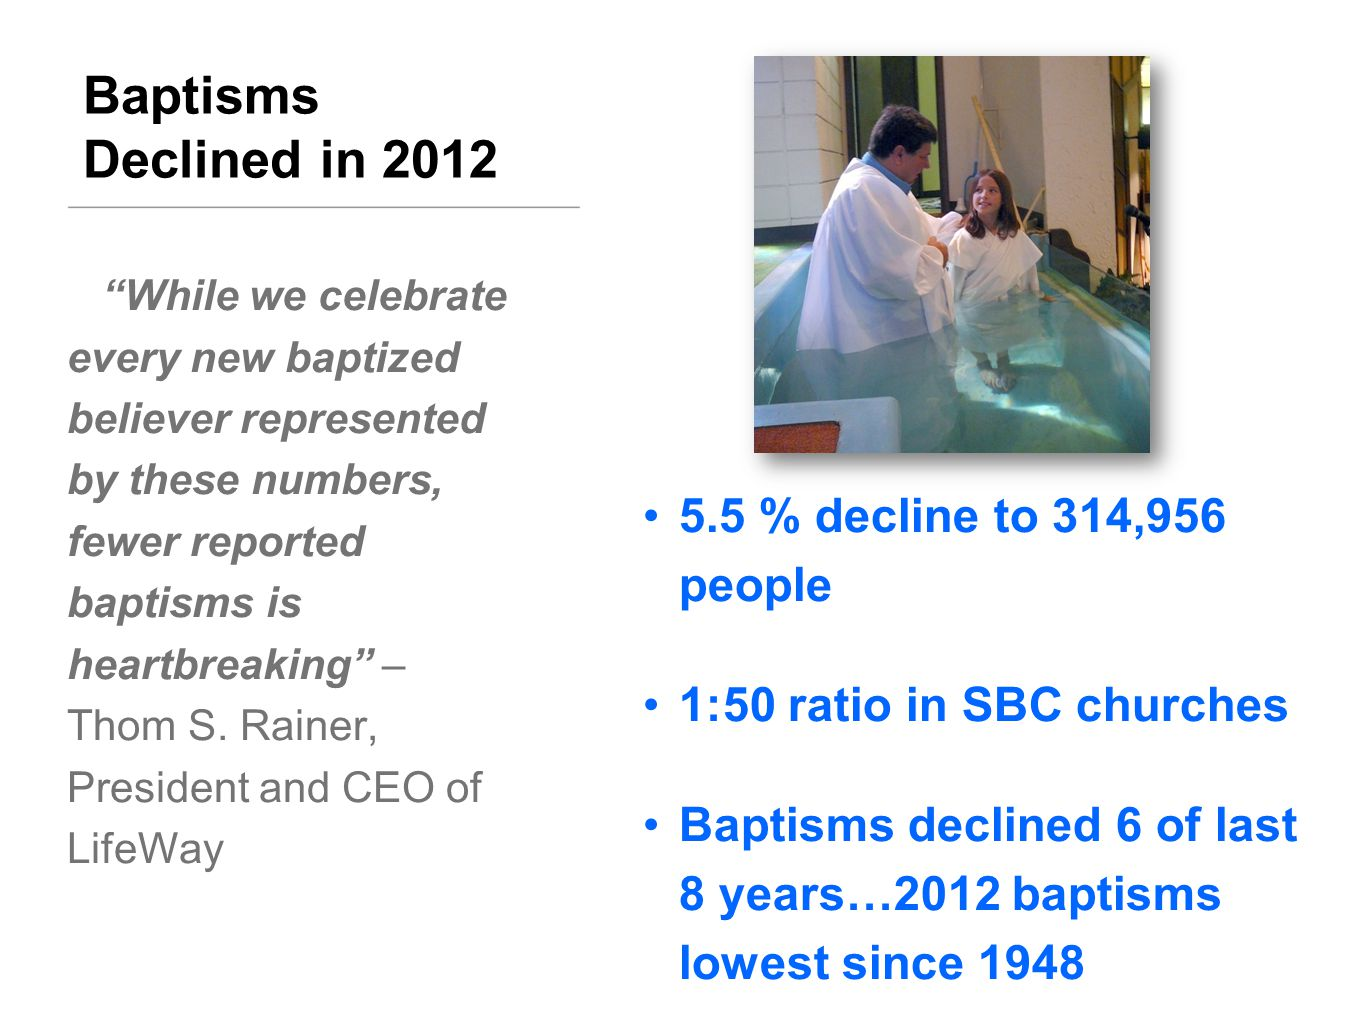 BAPTISMS BY AGE GROUPS, SBC YoungSenior PreschoolChildren YouthAdult YearTotal(Under 6) (6-8)(9-11)(12-17)(18-29)(30-59)(60+) 2000414,6574,40351,65474,99493,10070,466105,02415,016 2001395,9304,36449,13871,60786,92866,104101,80515,984 2002394,8934,38649,28770,88284,05665,906102,68017,696 2003377,3574,13948,95467,84681,24661,39497,96815,810 2004387,9474,20749,76767,59184,04063,772102,18016,390 2005371,8504,27249,68365,47981,70860,36294,13016,216 2006364,8264,17949,84765,07579,58758,09991,75416,645 2007345,9413,87845,82561,79275,98955,92987,73314,795 2008342,1983,84044,74161,23375,21556,04184,66716,461 2009349,7373,89144,16263,04076,44257,33187,61117,260 2010331,0083,35642,30259,81573,11854,32681,73016,361 Baptisms in the past decade